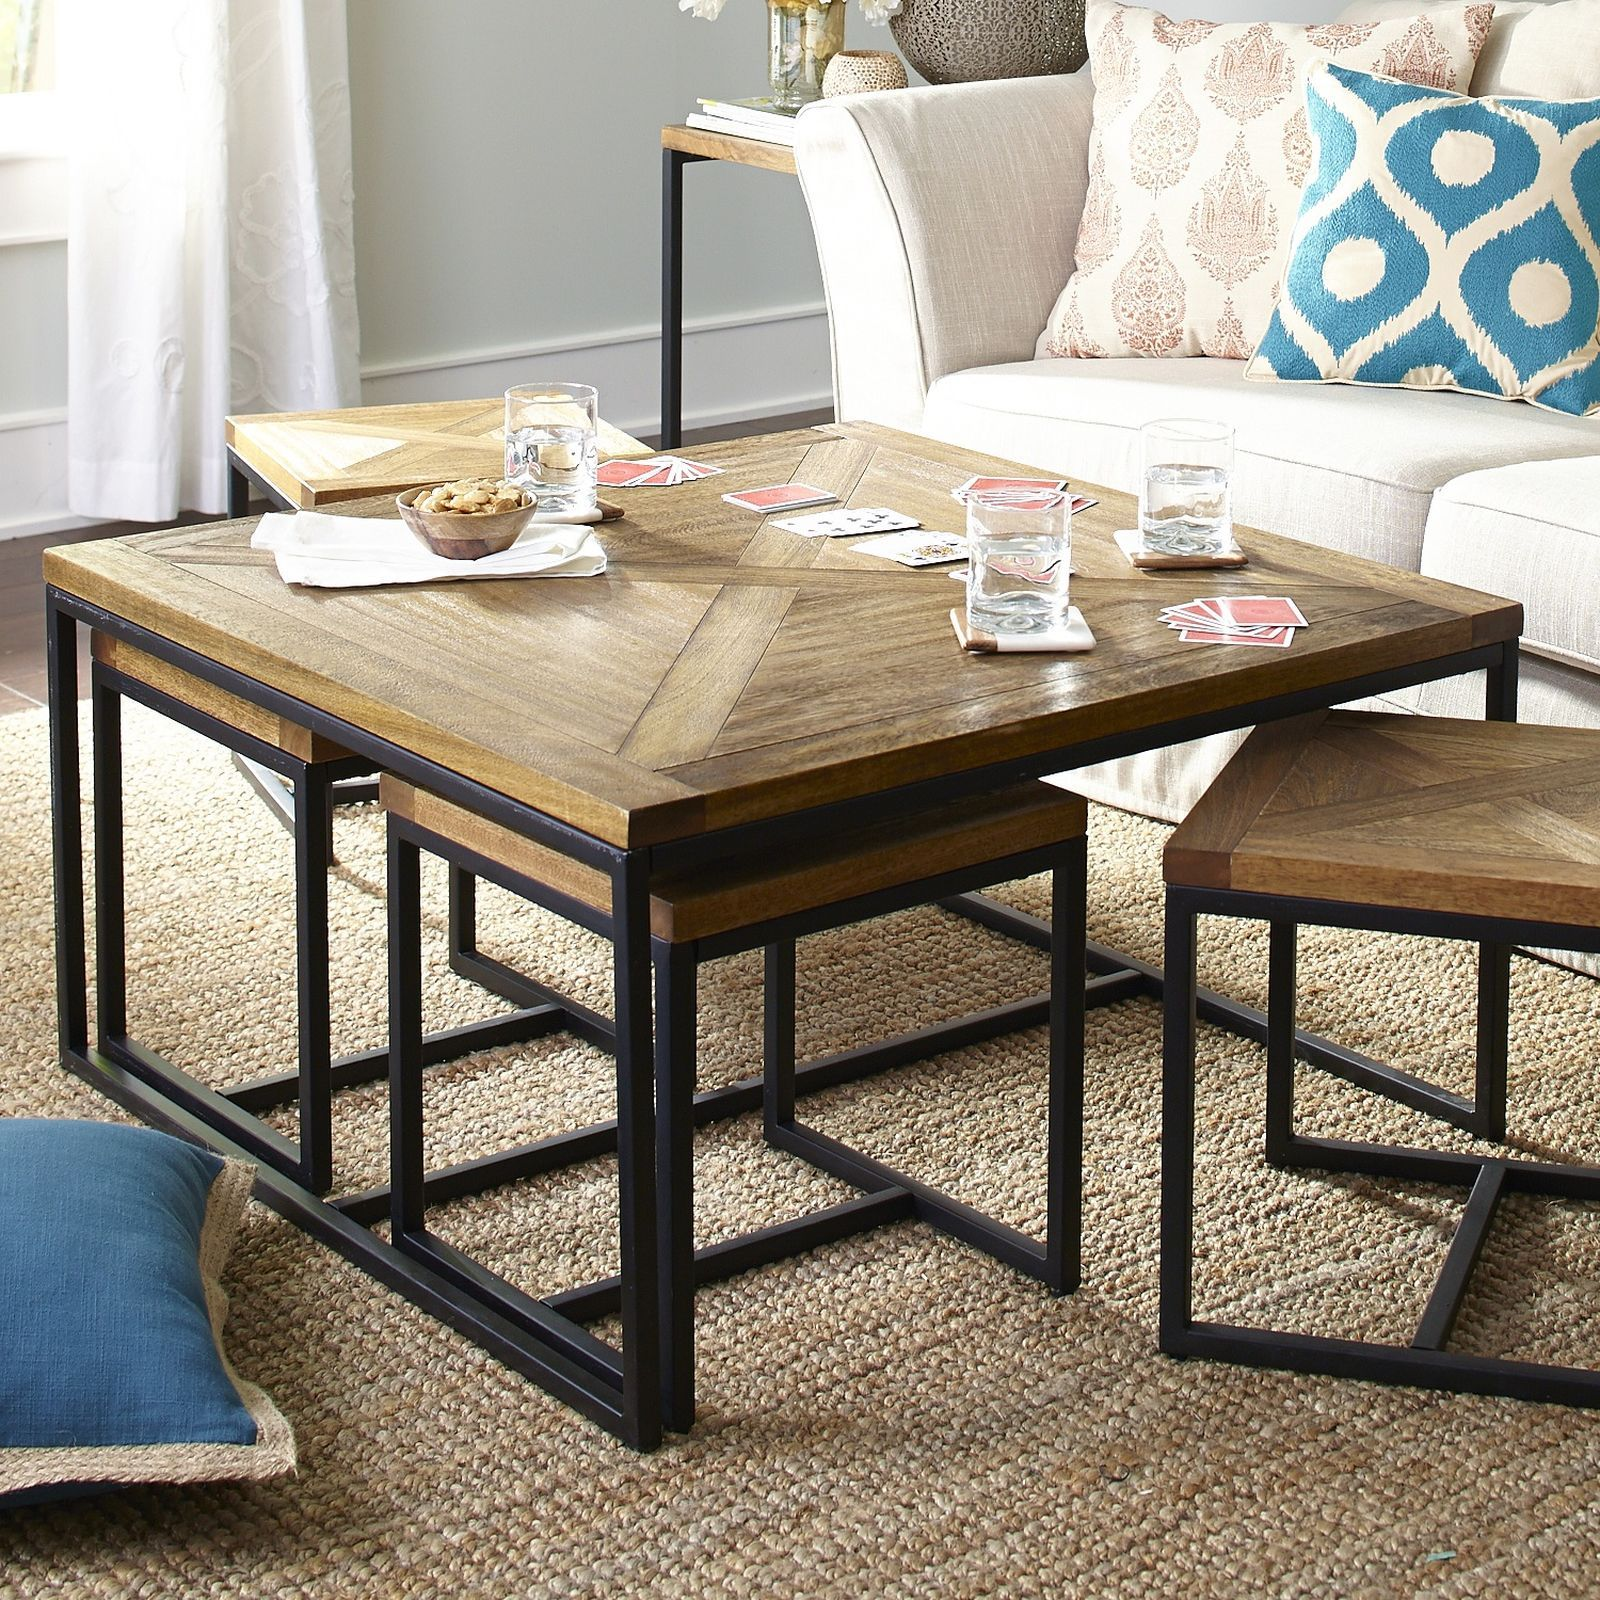 $700 Parquet Coffee Table Set - Java | Pier 1 Imports | Home ...